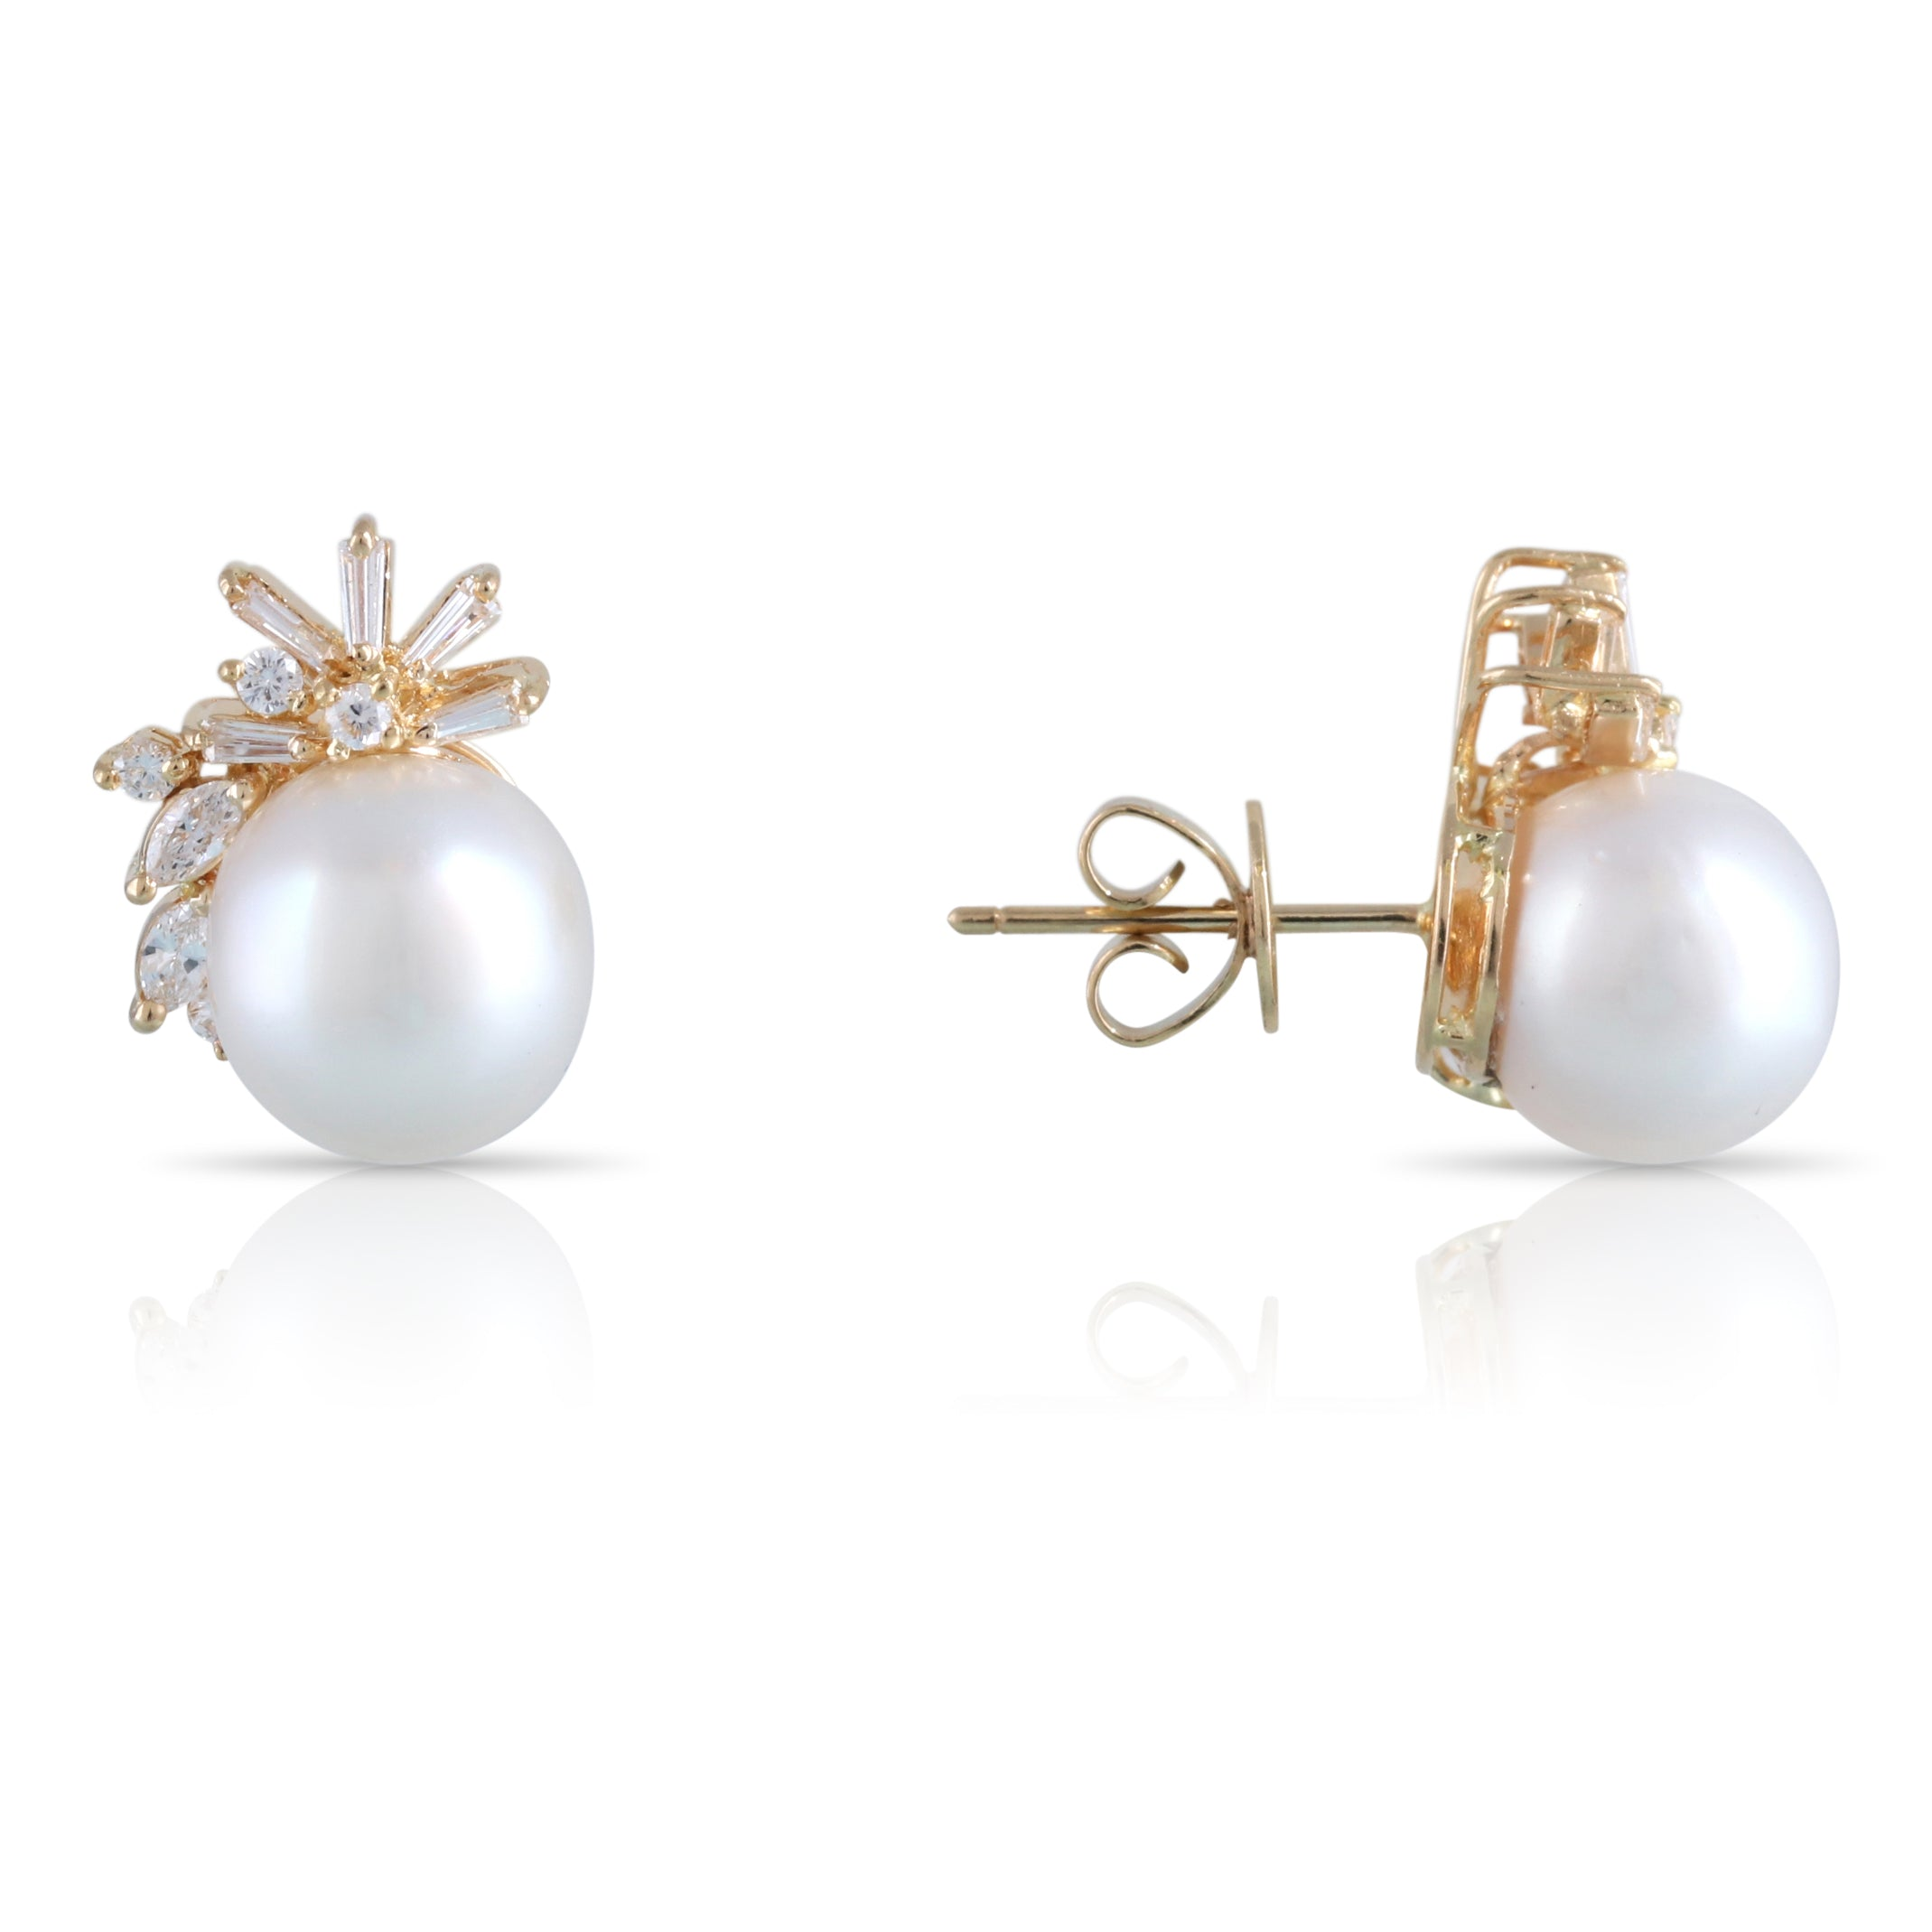 Diamond and Pearl Stud Earrings | The Kinsley